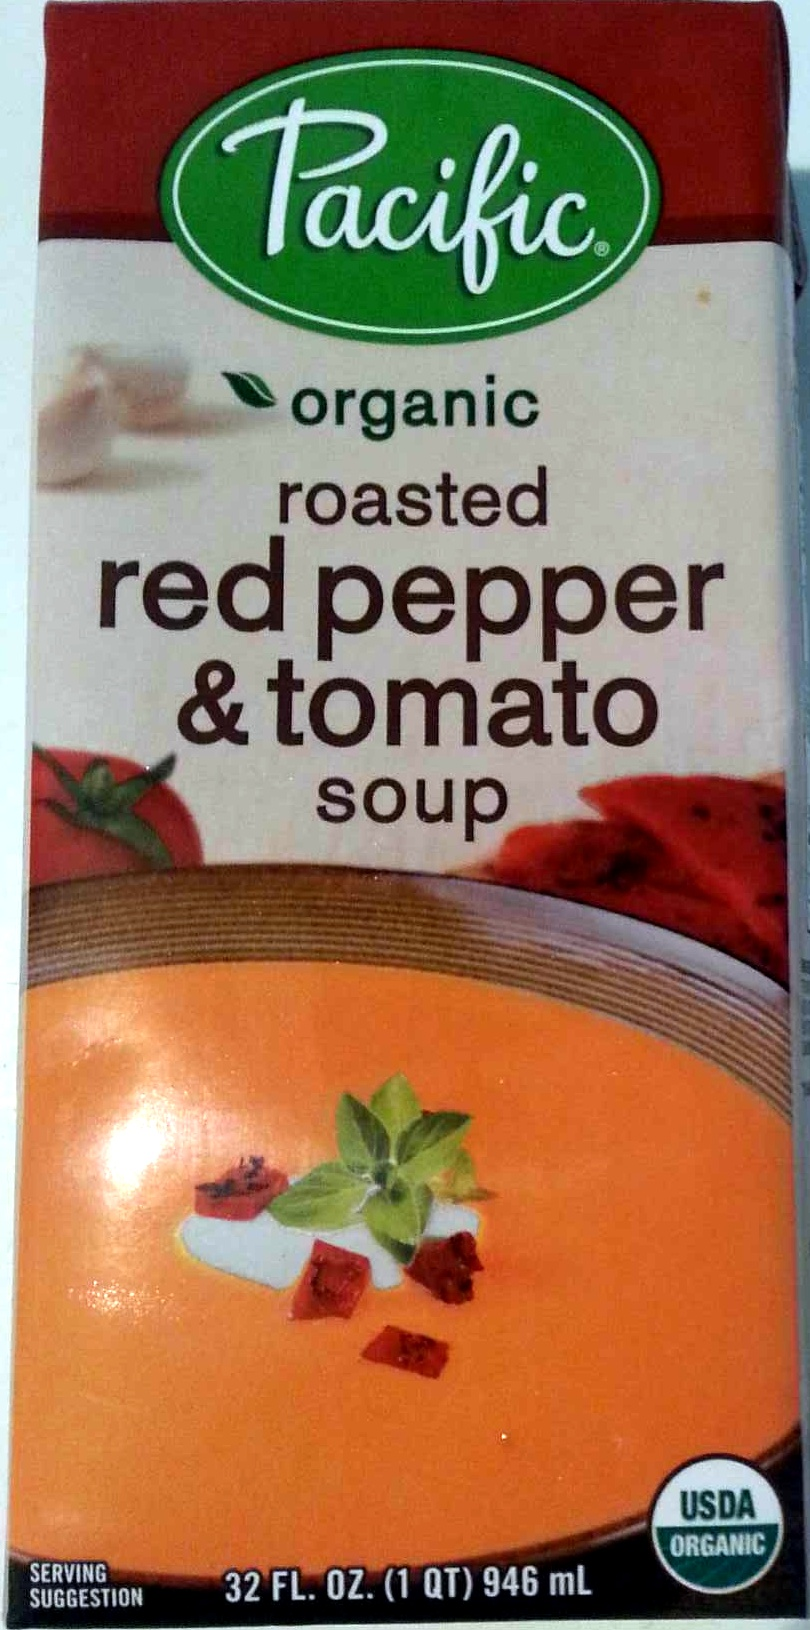 Organic roasted red pepper tomato soup pacific 946 ml for Roasted pepper tomato soup